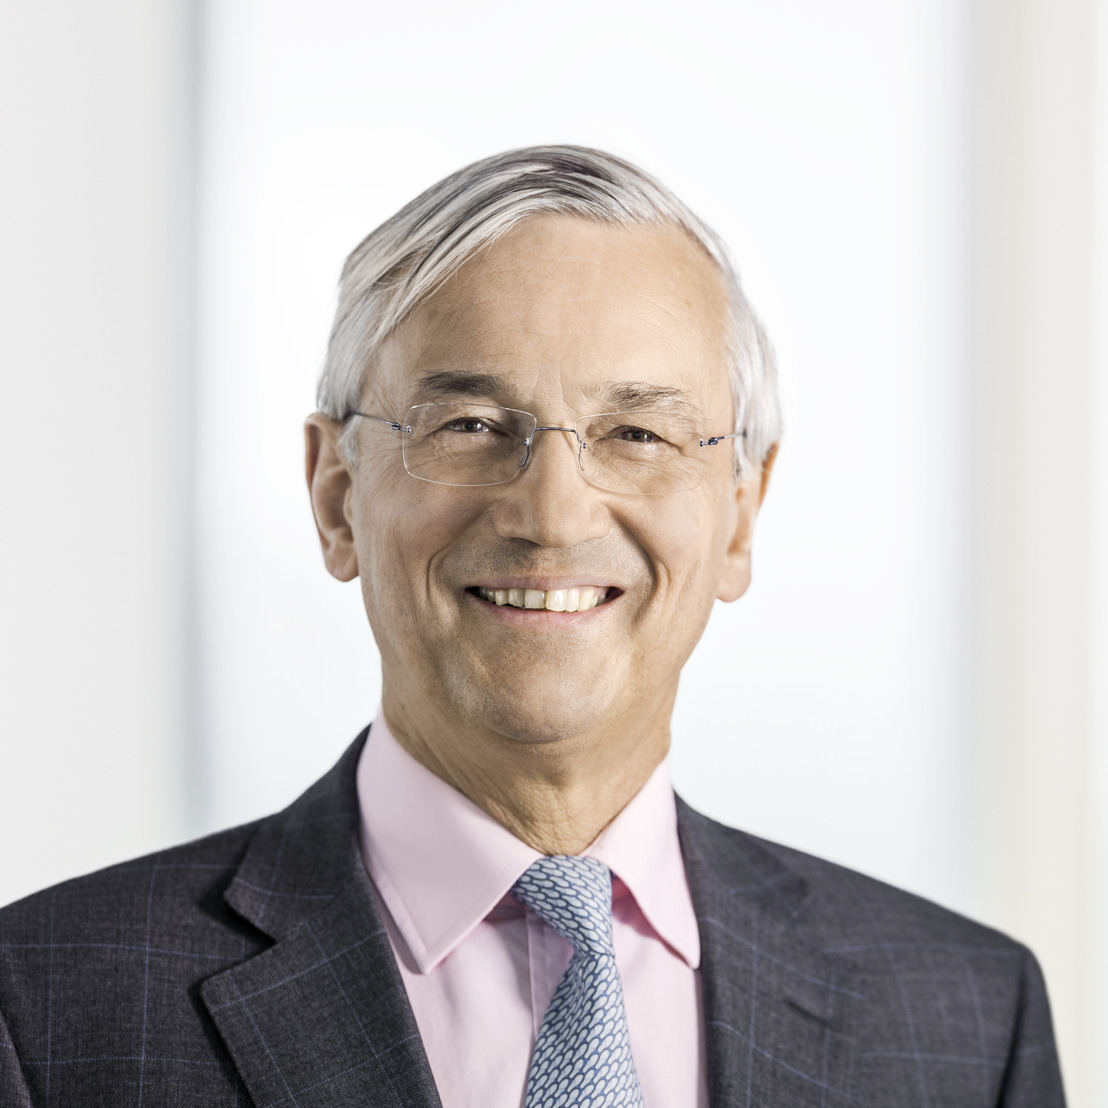 Diego du Monceau de Bergendal to succeed Eric Boyer de la Giroday as Chairman of the Board of Directors of ING Belgium